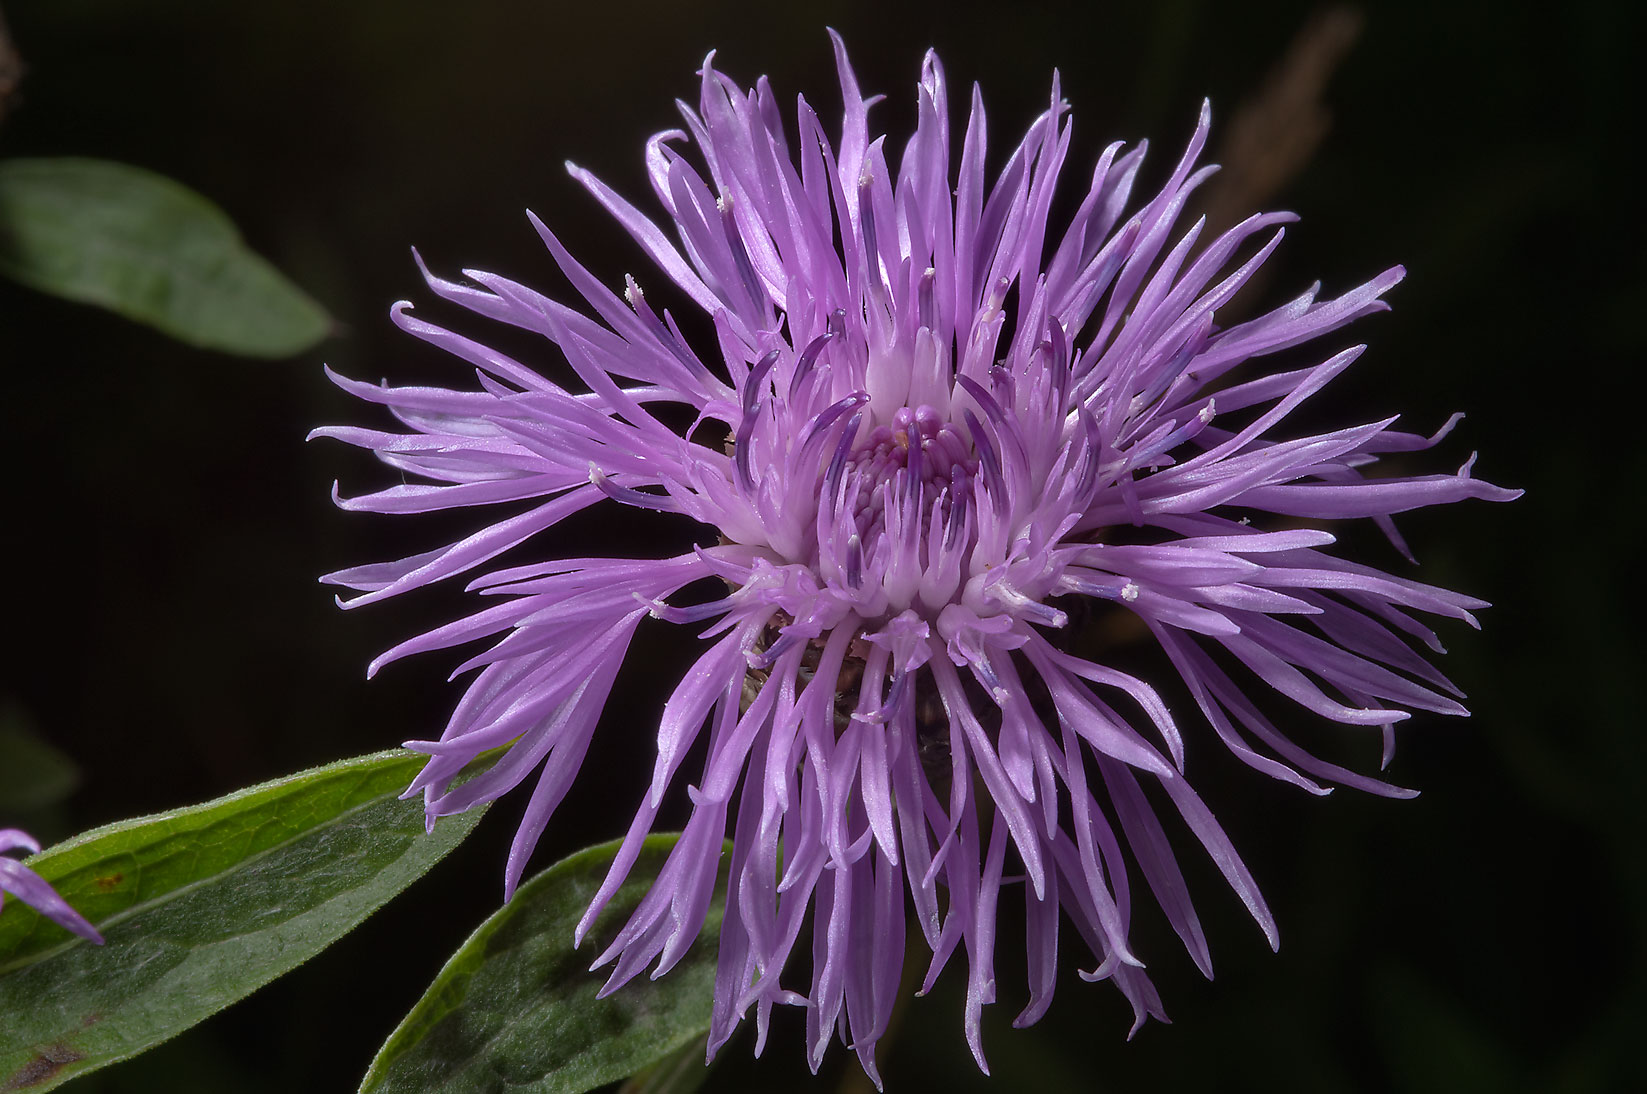 Brown Knapweed (Centaurea jacea, Russian name...from Deviatkino. St.Petersburg, Russia